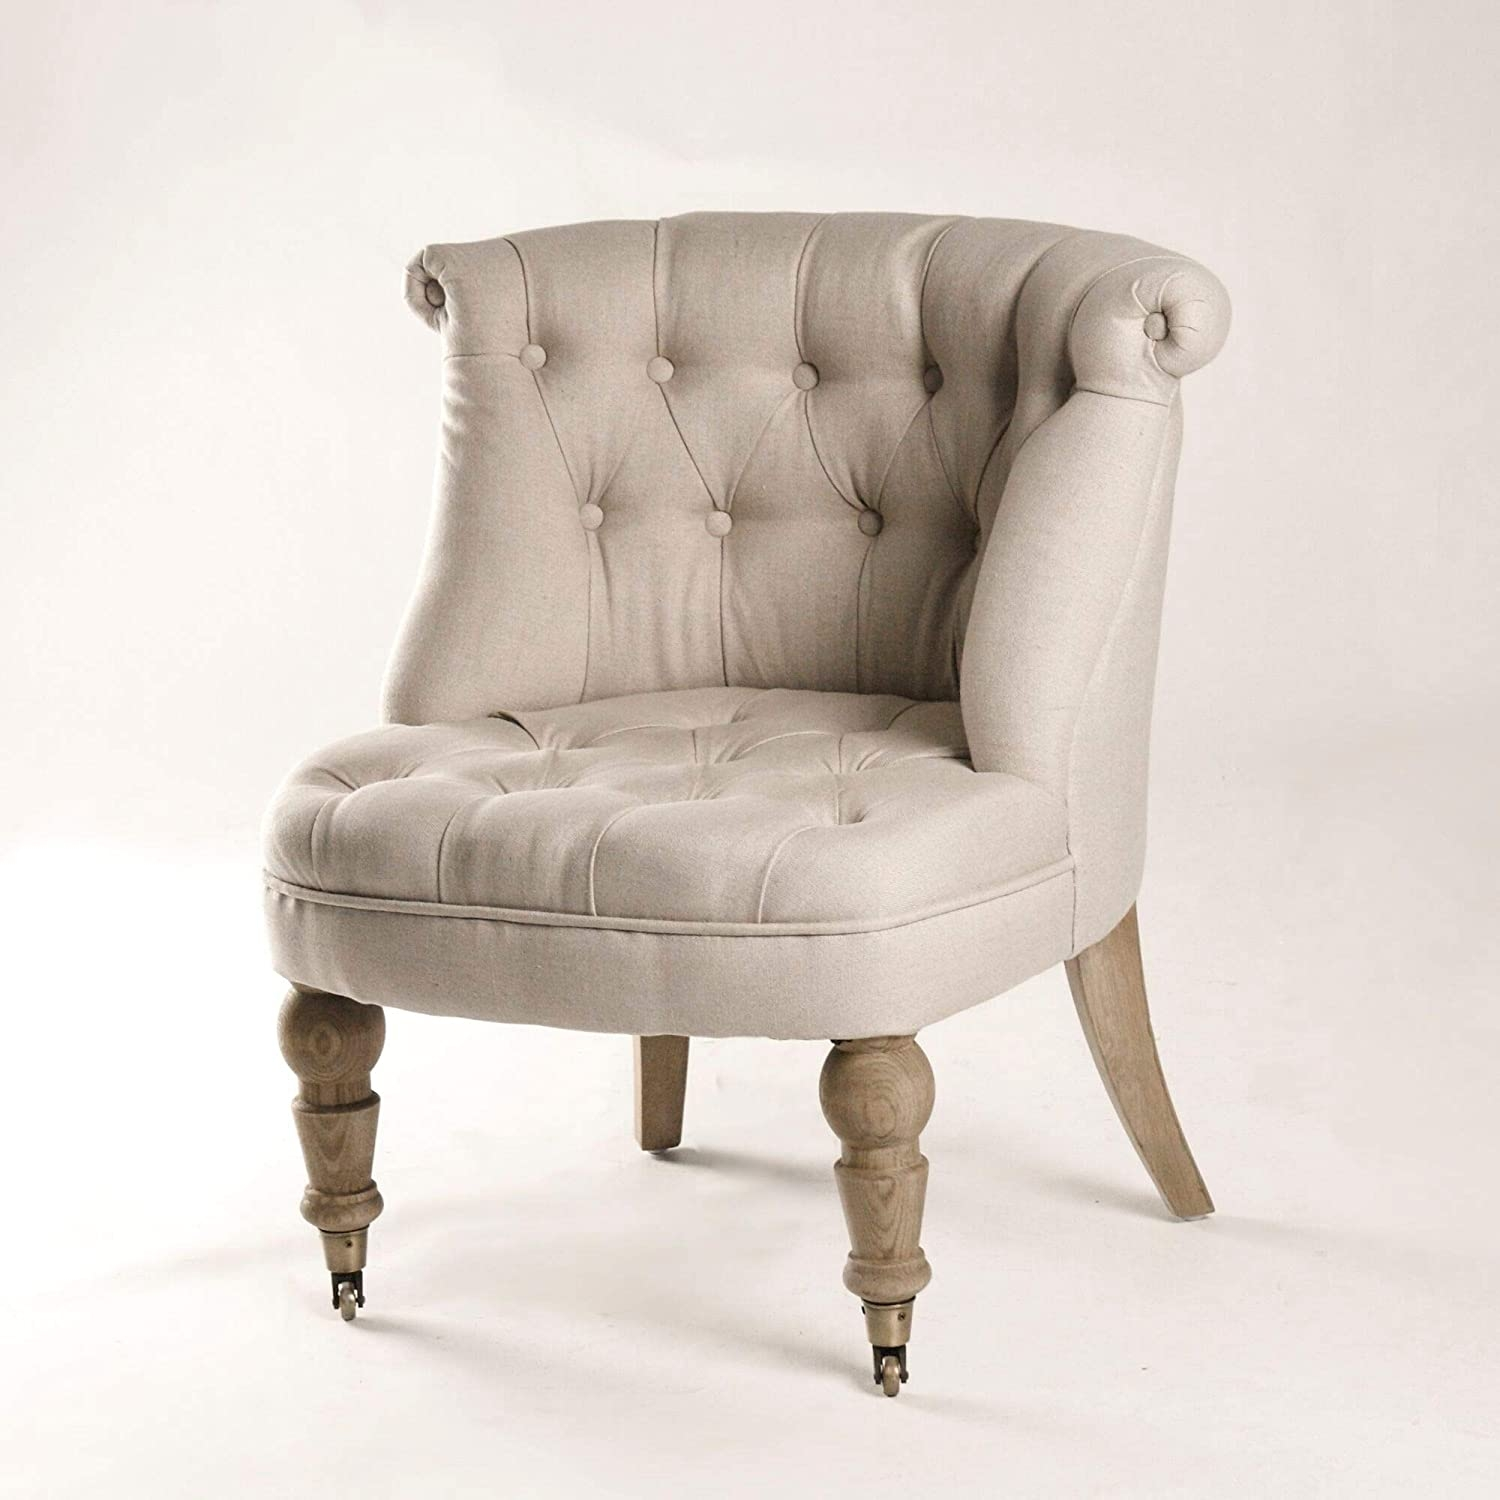 Tufted Slipper Chair In Linen Perfect Bathroom Vanity Chair In